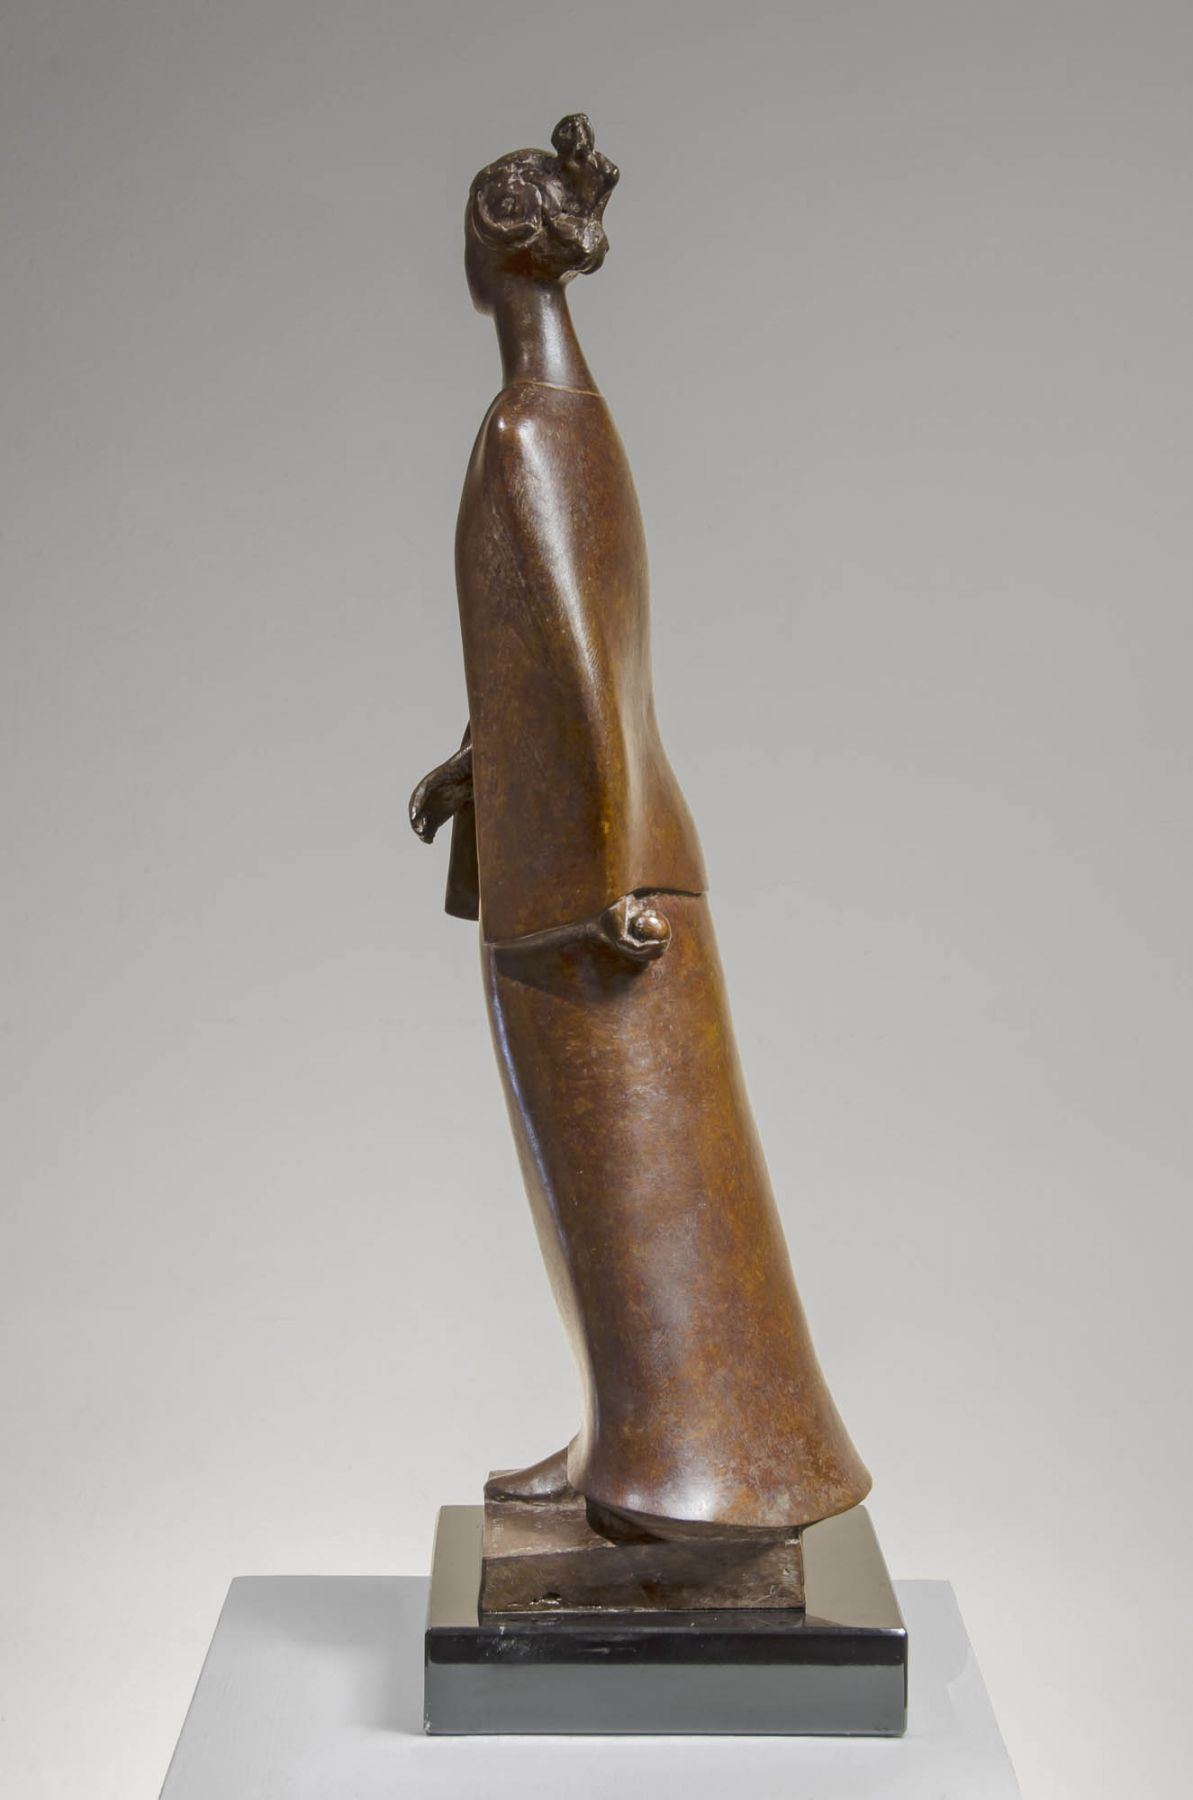 Gilbert Franklin, Figure with Cape and Apple, c. 2000